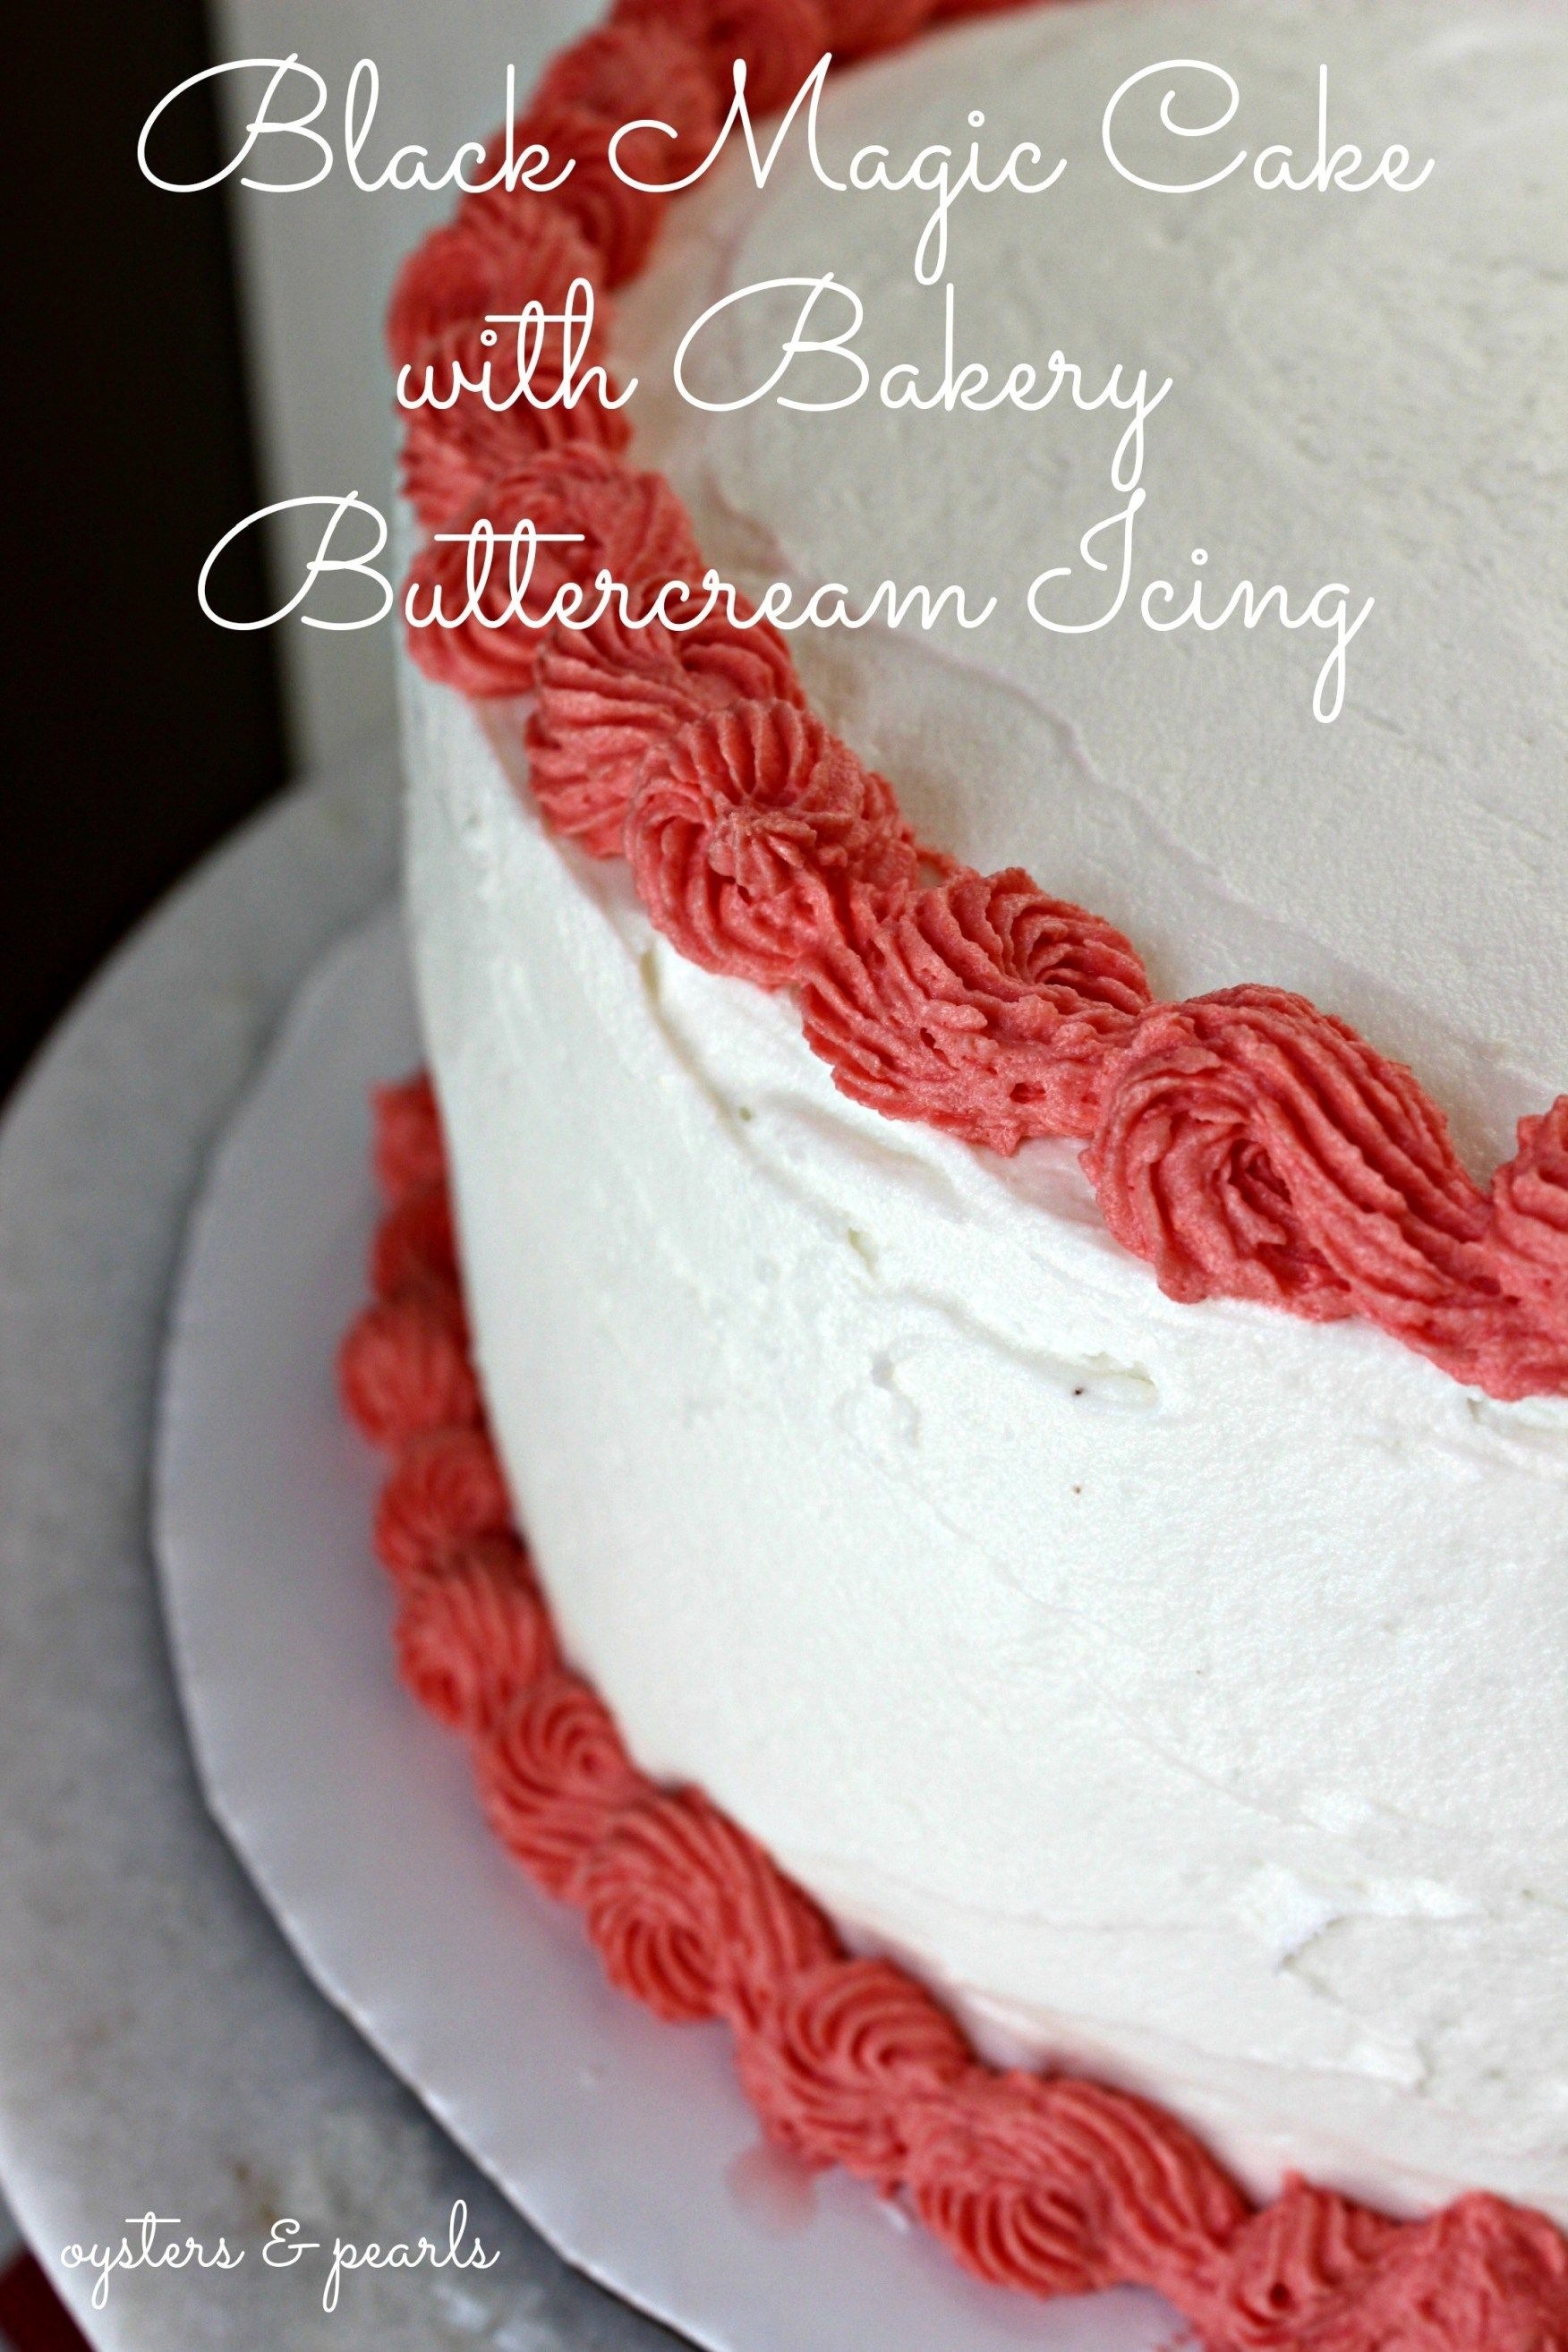 Bakery style buttercream icing recipe buttercream icing